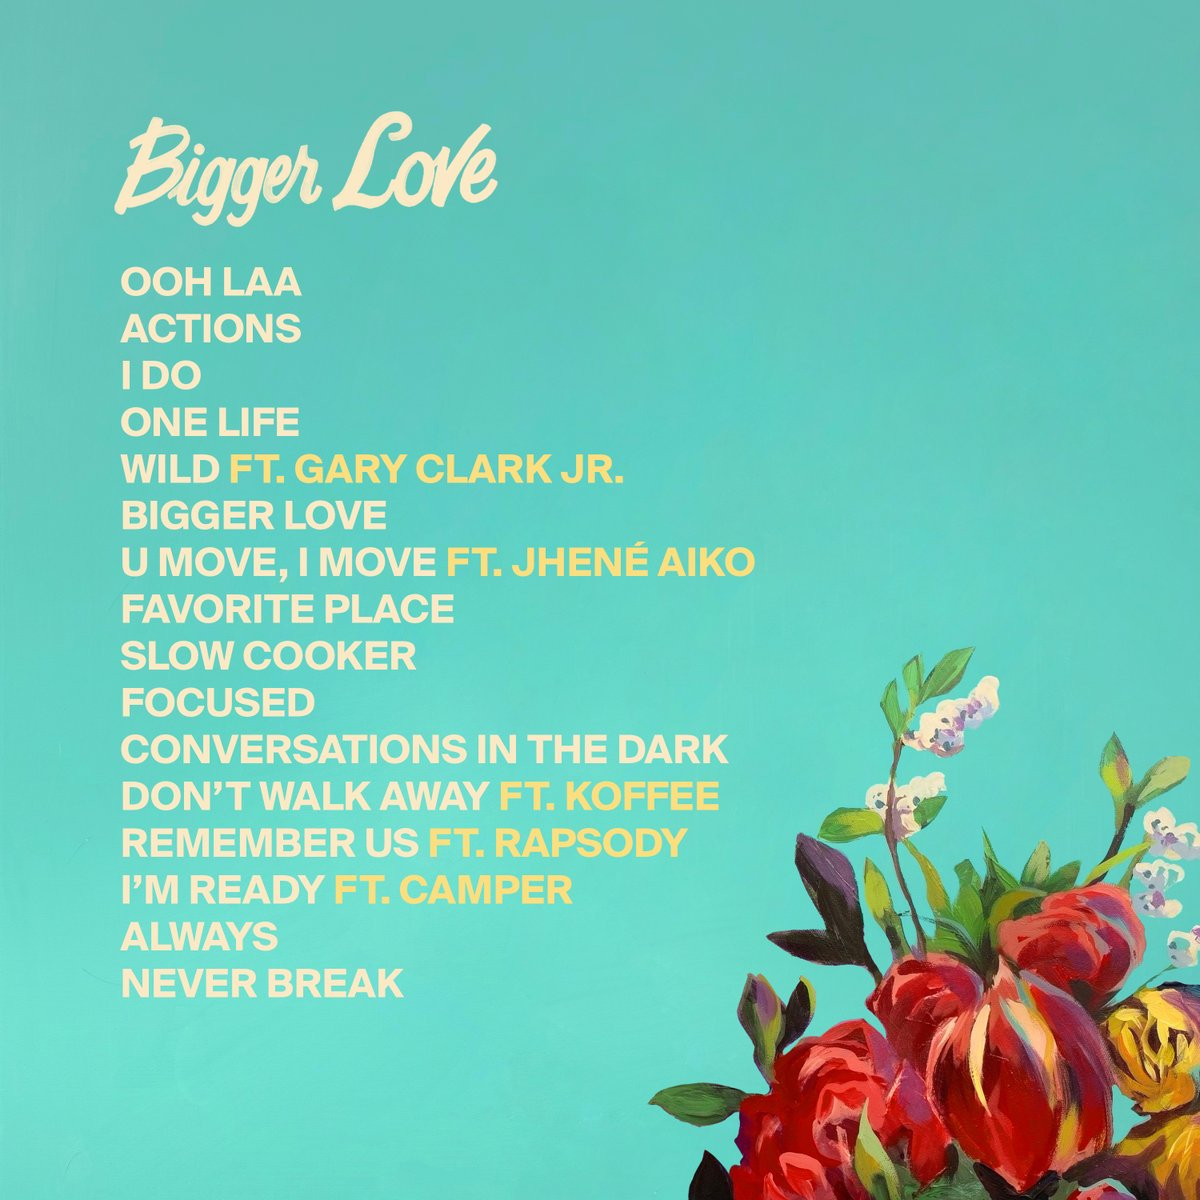 I'm so excited to introduce my new album #BiggerLove to the world.  Here's the album cover painted by brilliant artist Charly Palmer.  Check out the track list, including my amazing featured guests.